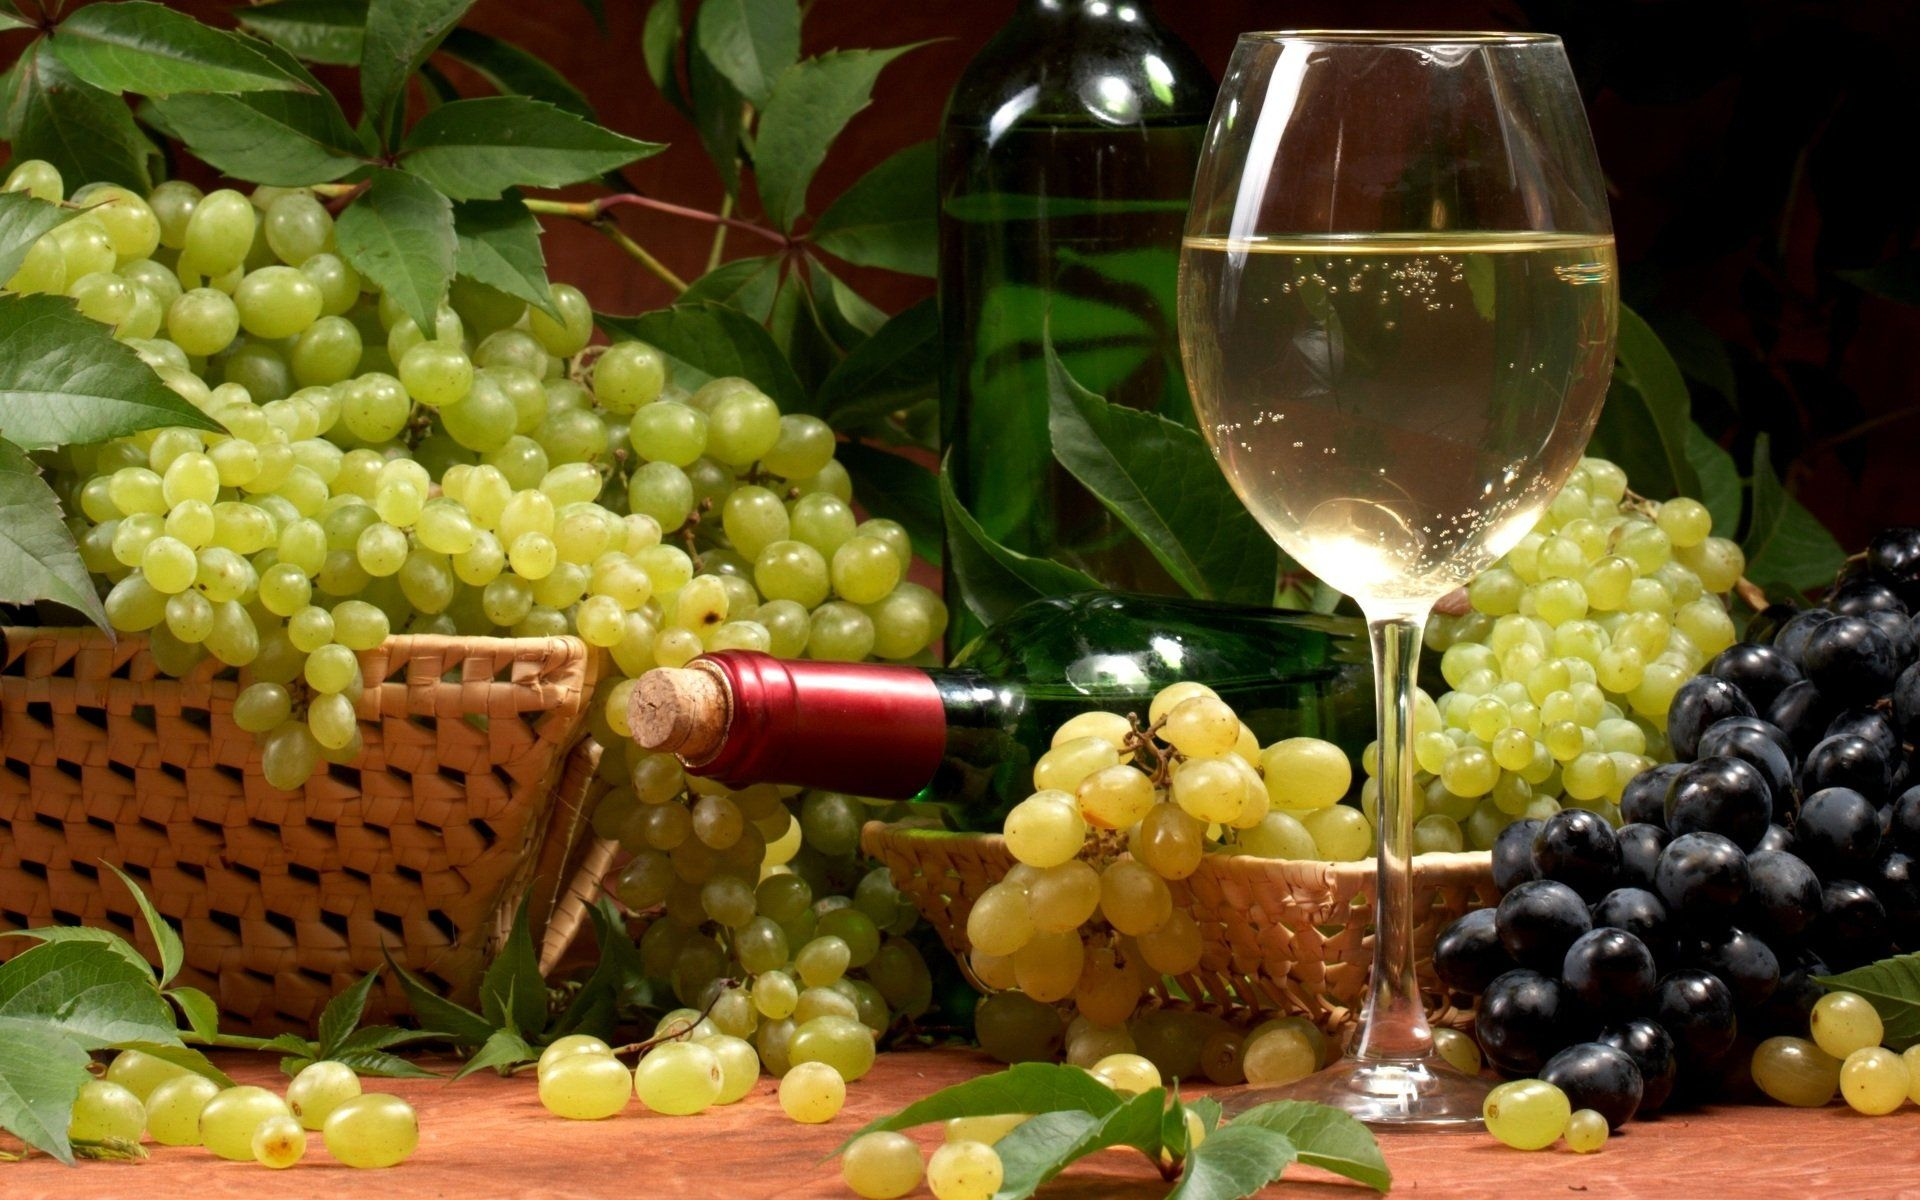 Pin by 💋Dion💋 on Healthy lunch ideas White wine, Etched